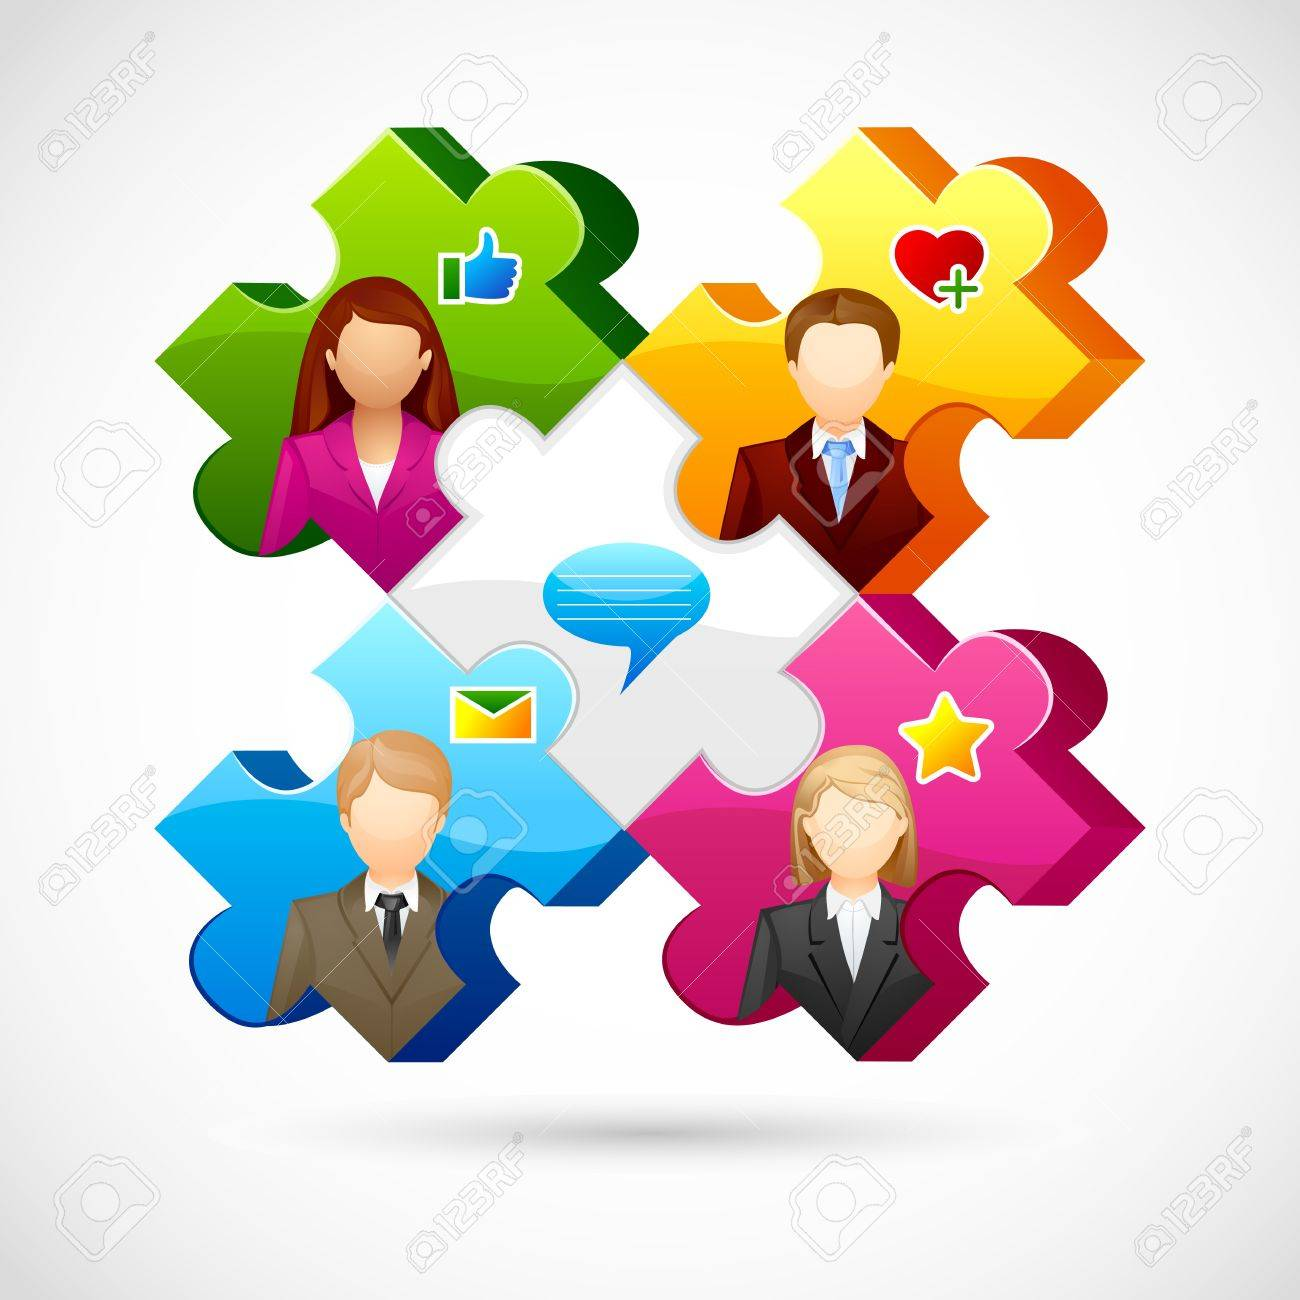 vector illustration of human jigsaw puzzle Stock Vector - 19372702